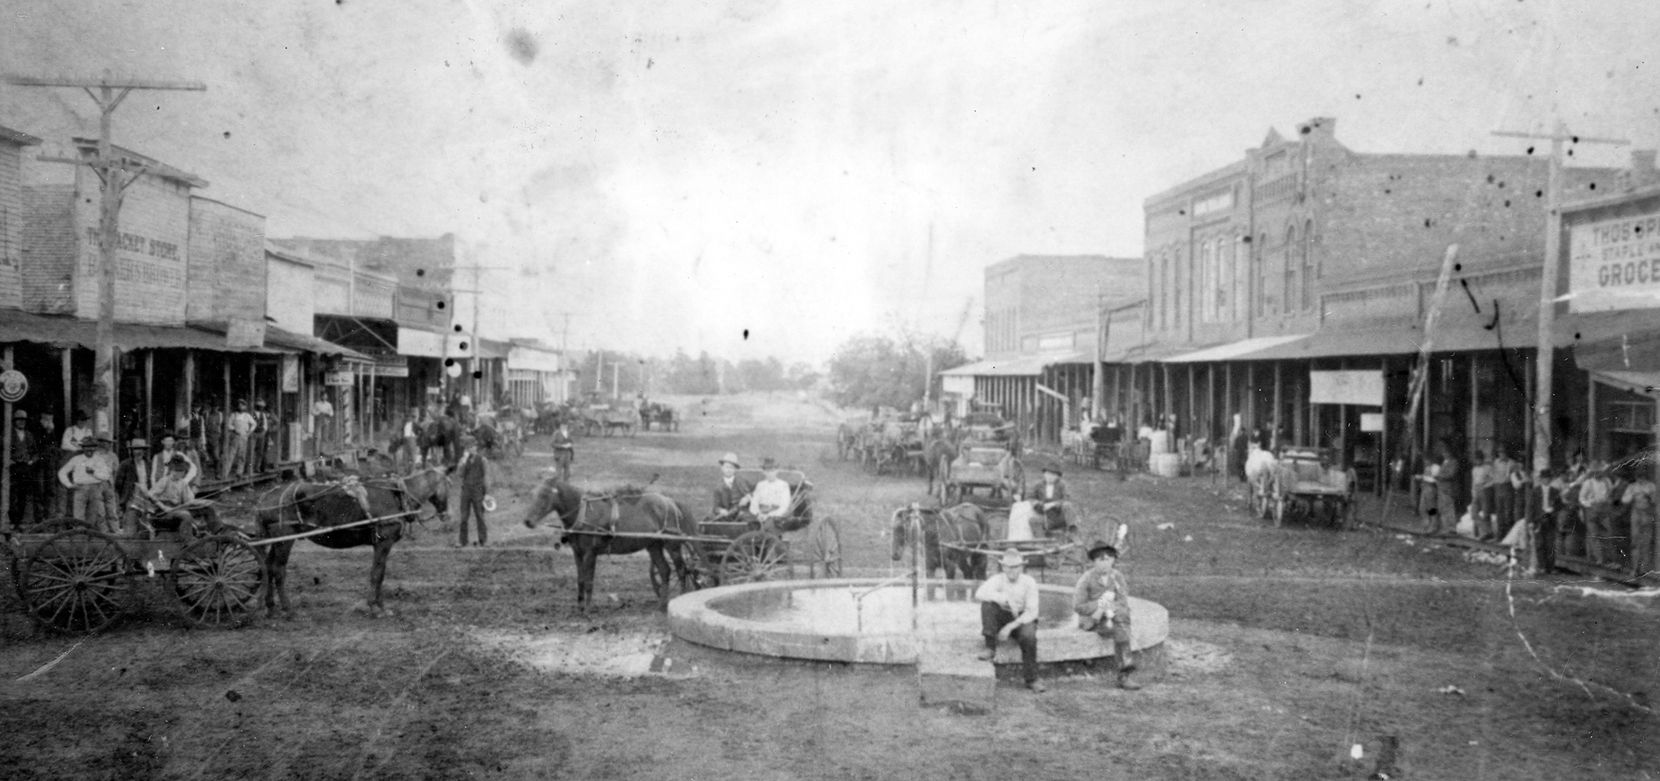 Arlington mineral well, looking east from Main and Center streets, in 1900.